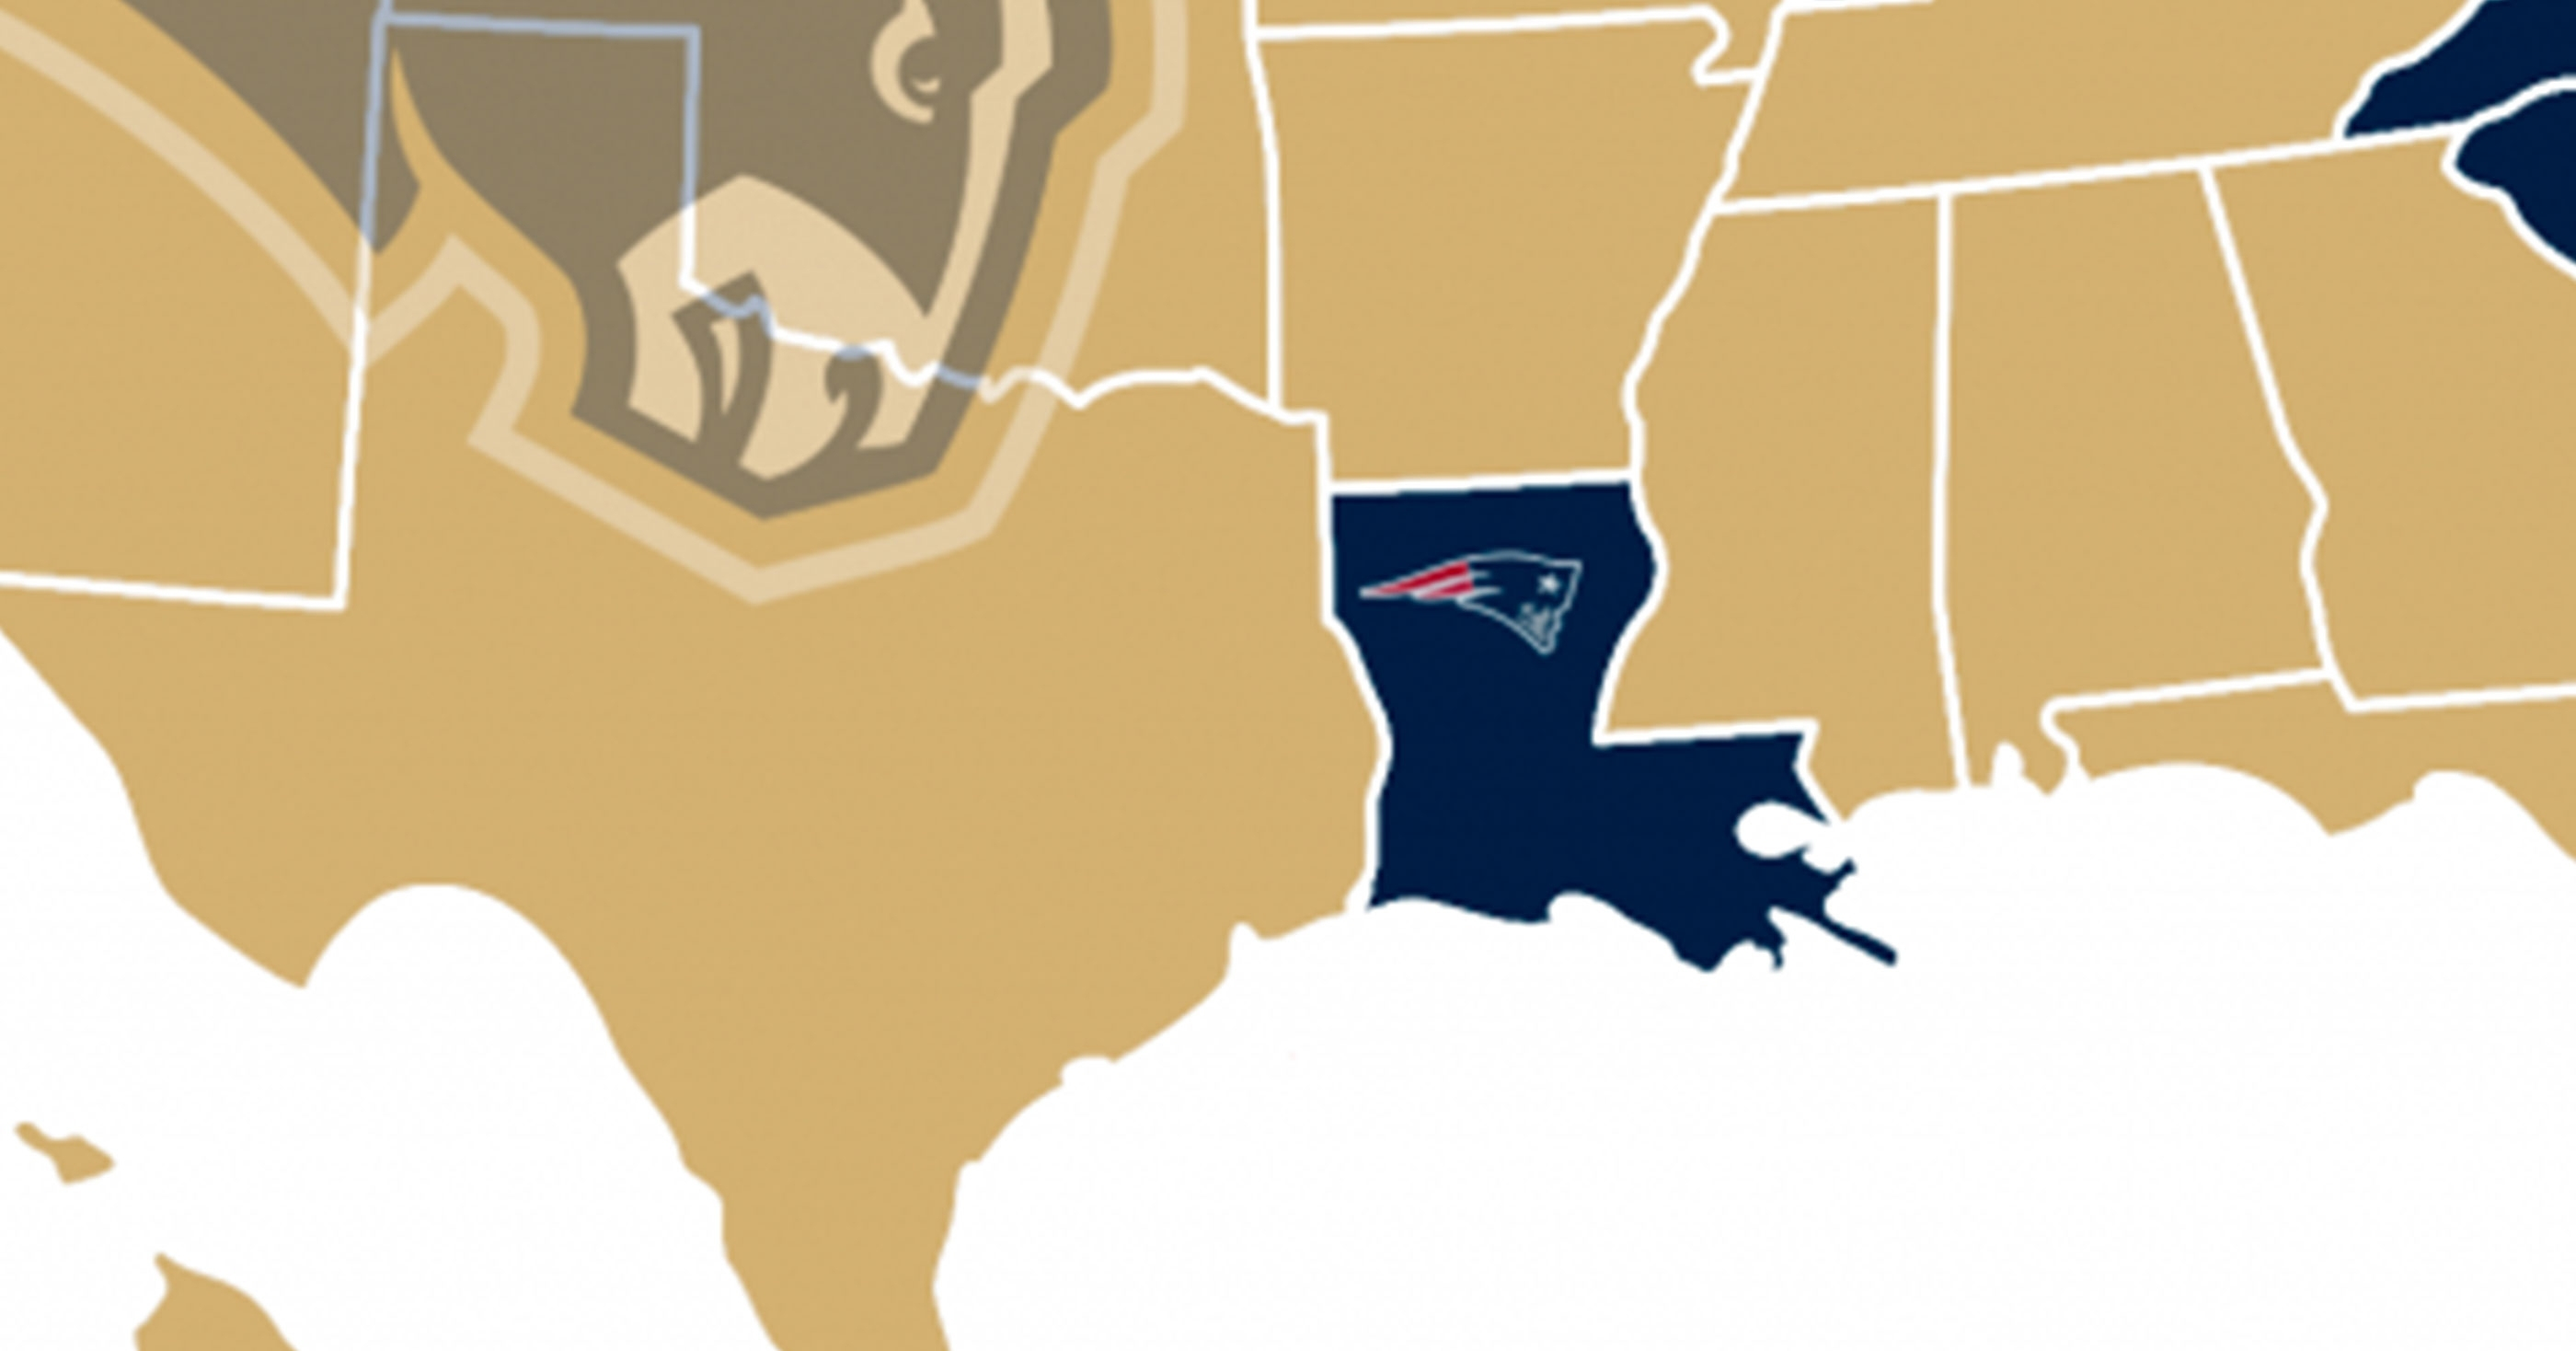 Map Shows Which Team Each State Is Rooting For In Super Bowl pertaining to Super Bowl Rooting Map